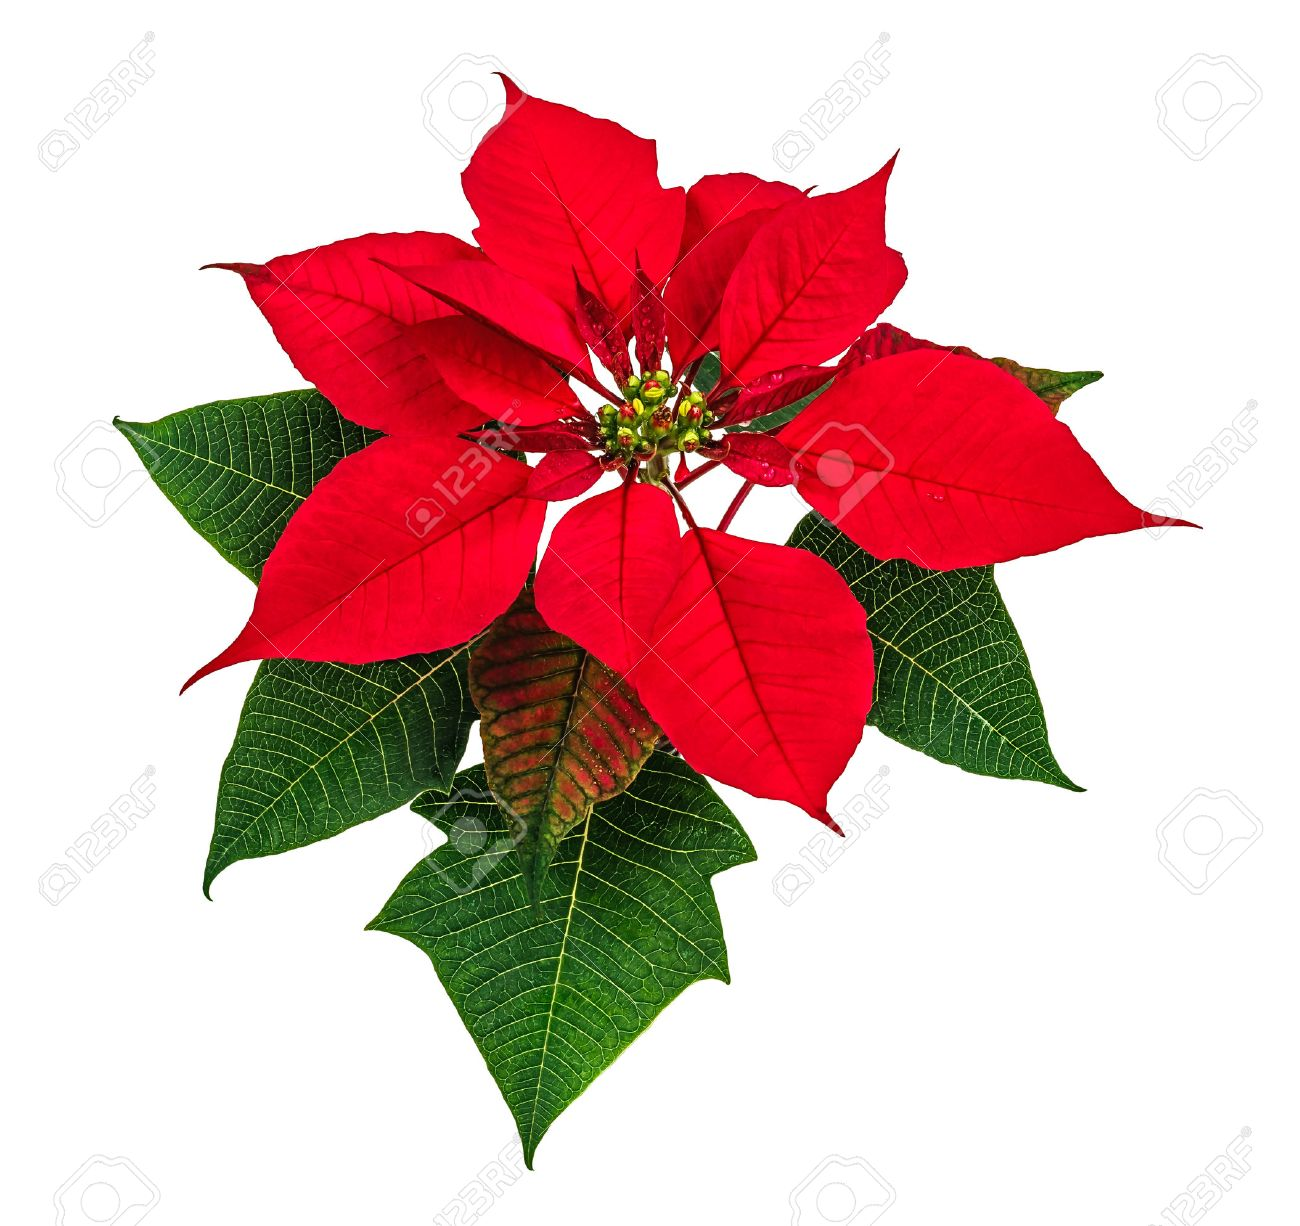 Christmas Red Poinsettia Flower Isolated On White Background Stock 1300x1226